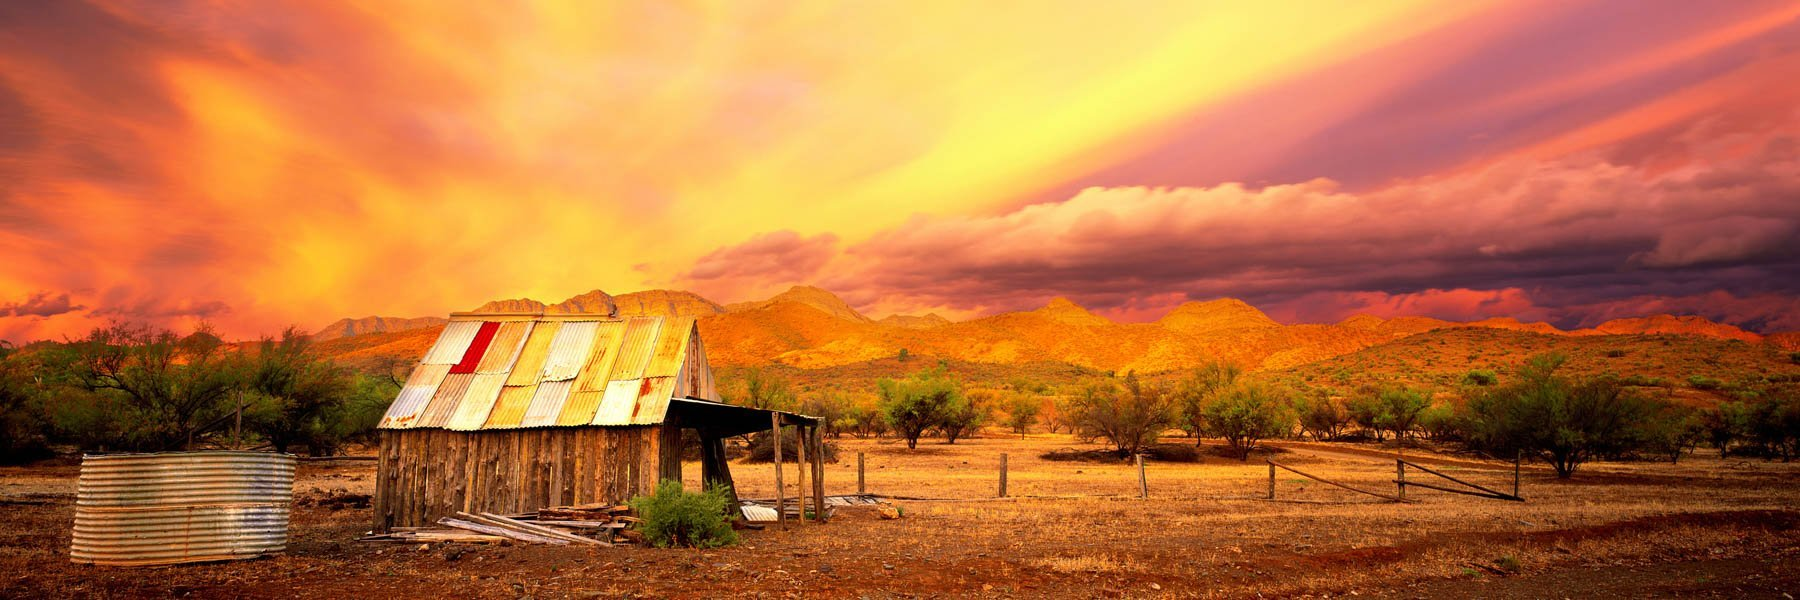 Ablaze with the fires of sunset, a magnificent sky draws its embers across the desolate Flinders Ranges, SA, Australia.